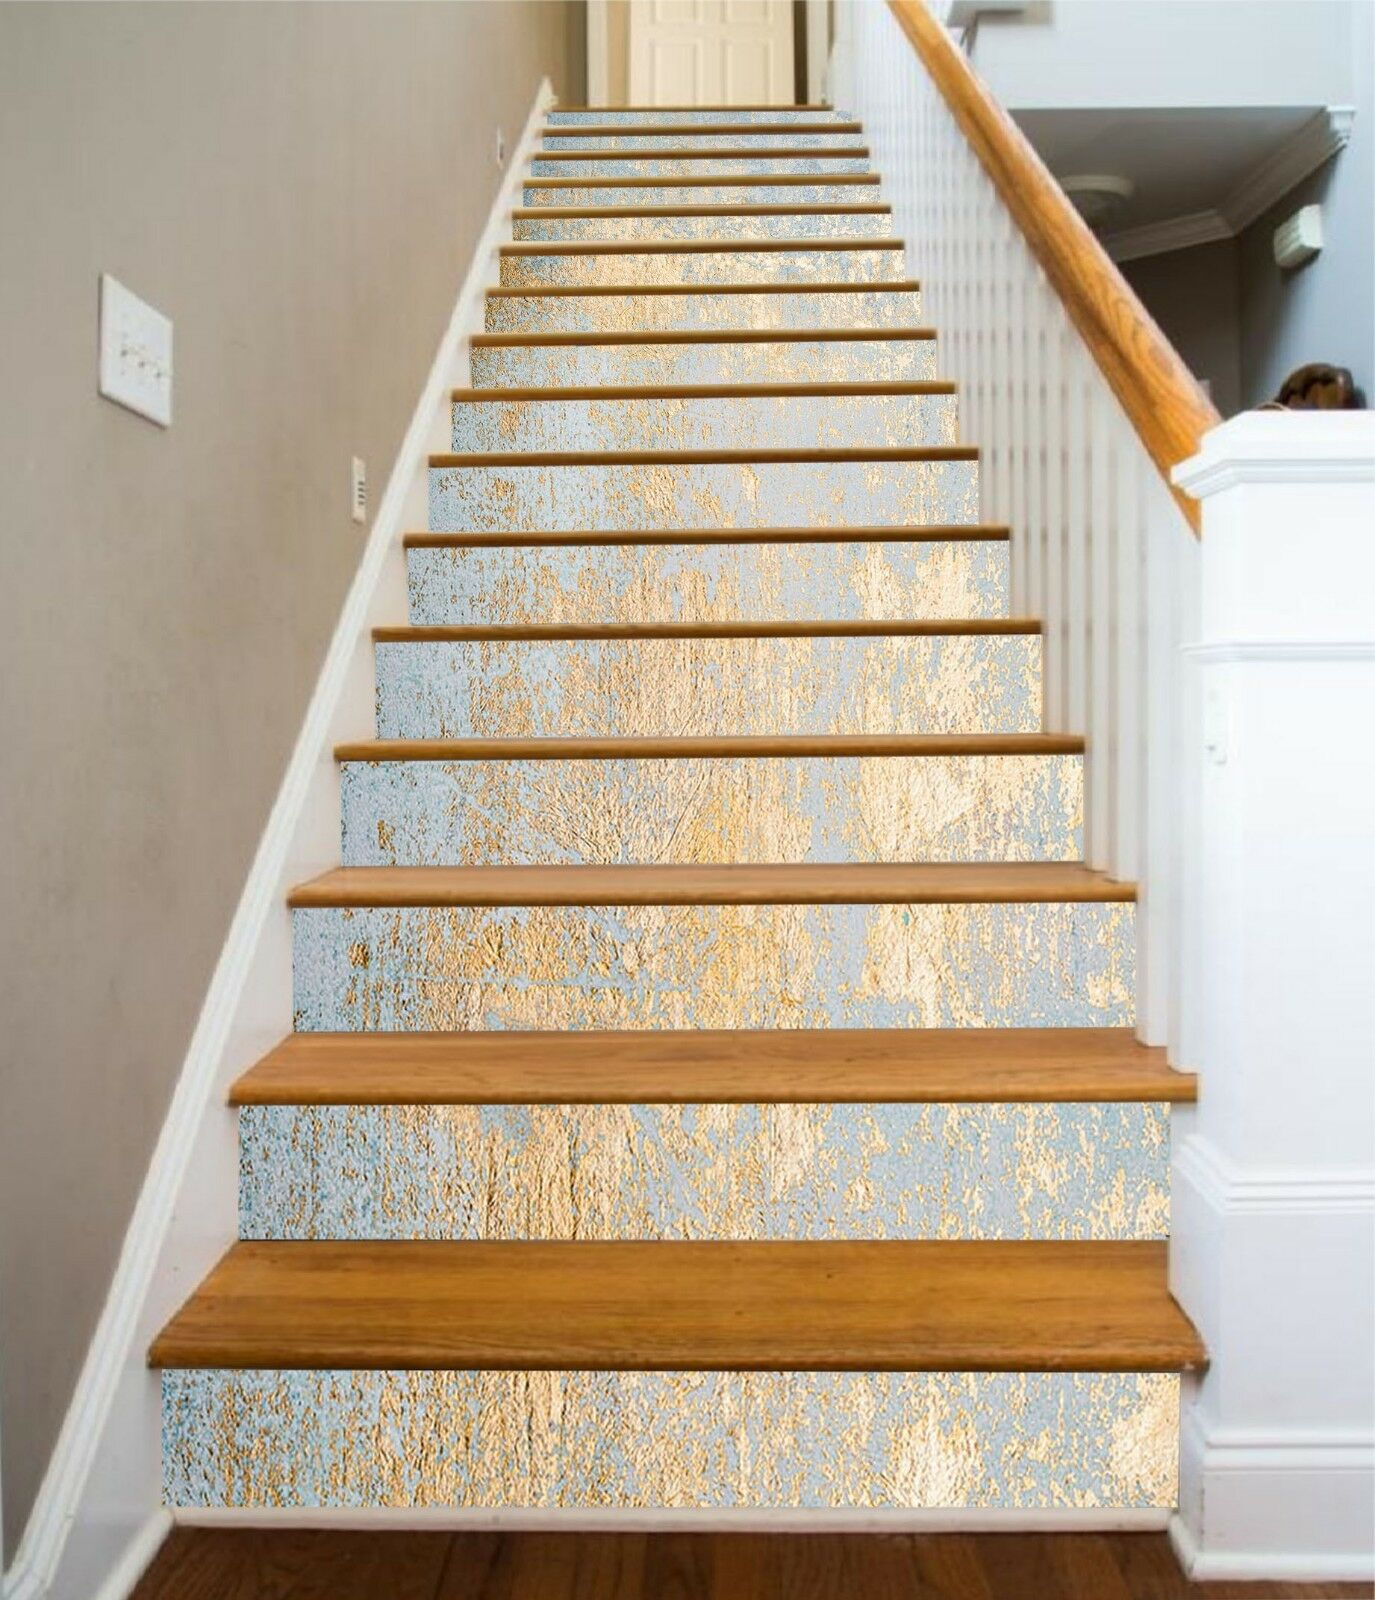 3D Fashion Gold Art 1  Tile Marble Stair Risers Decoration Mural Vinyl Wallpaper